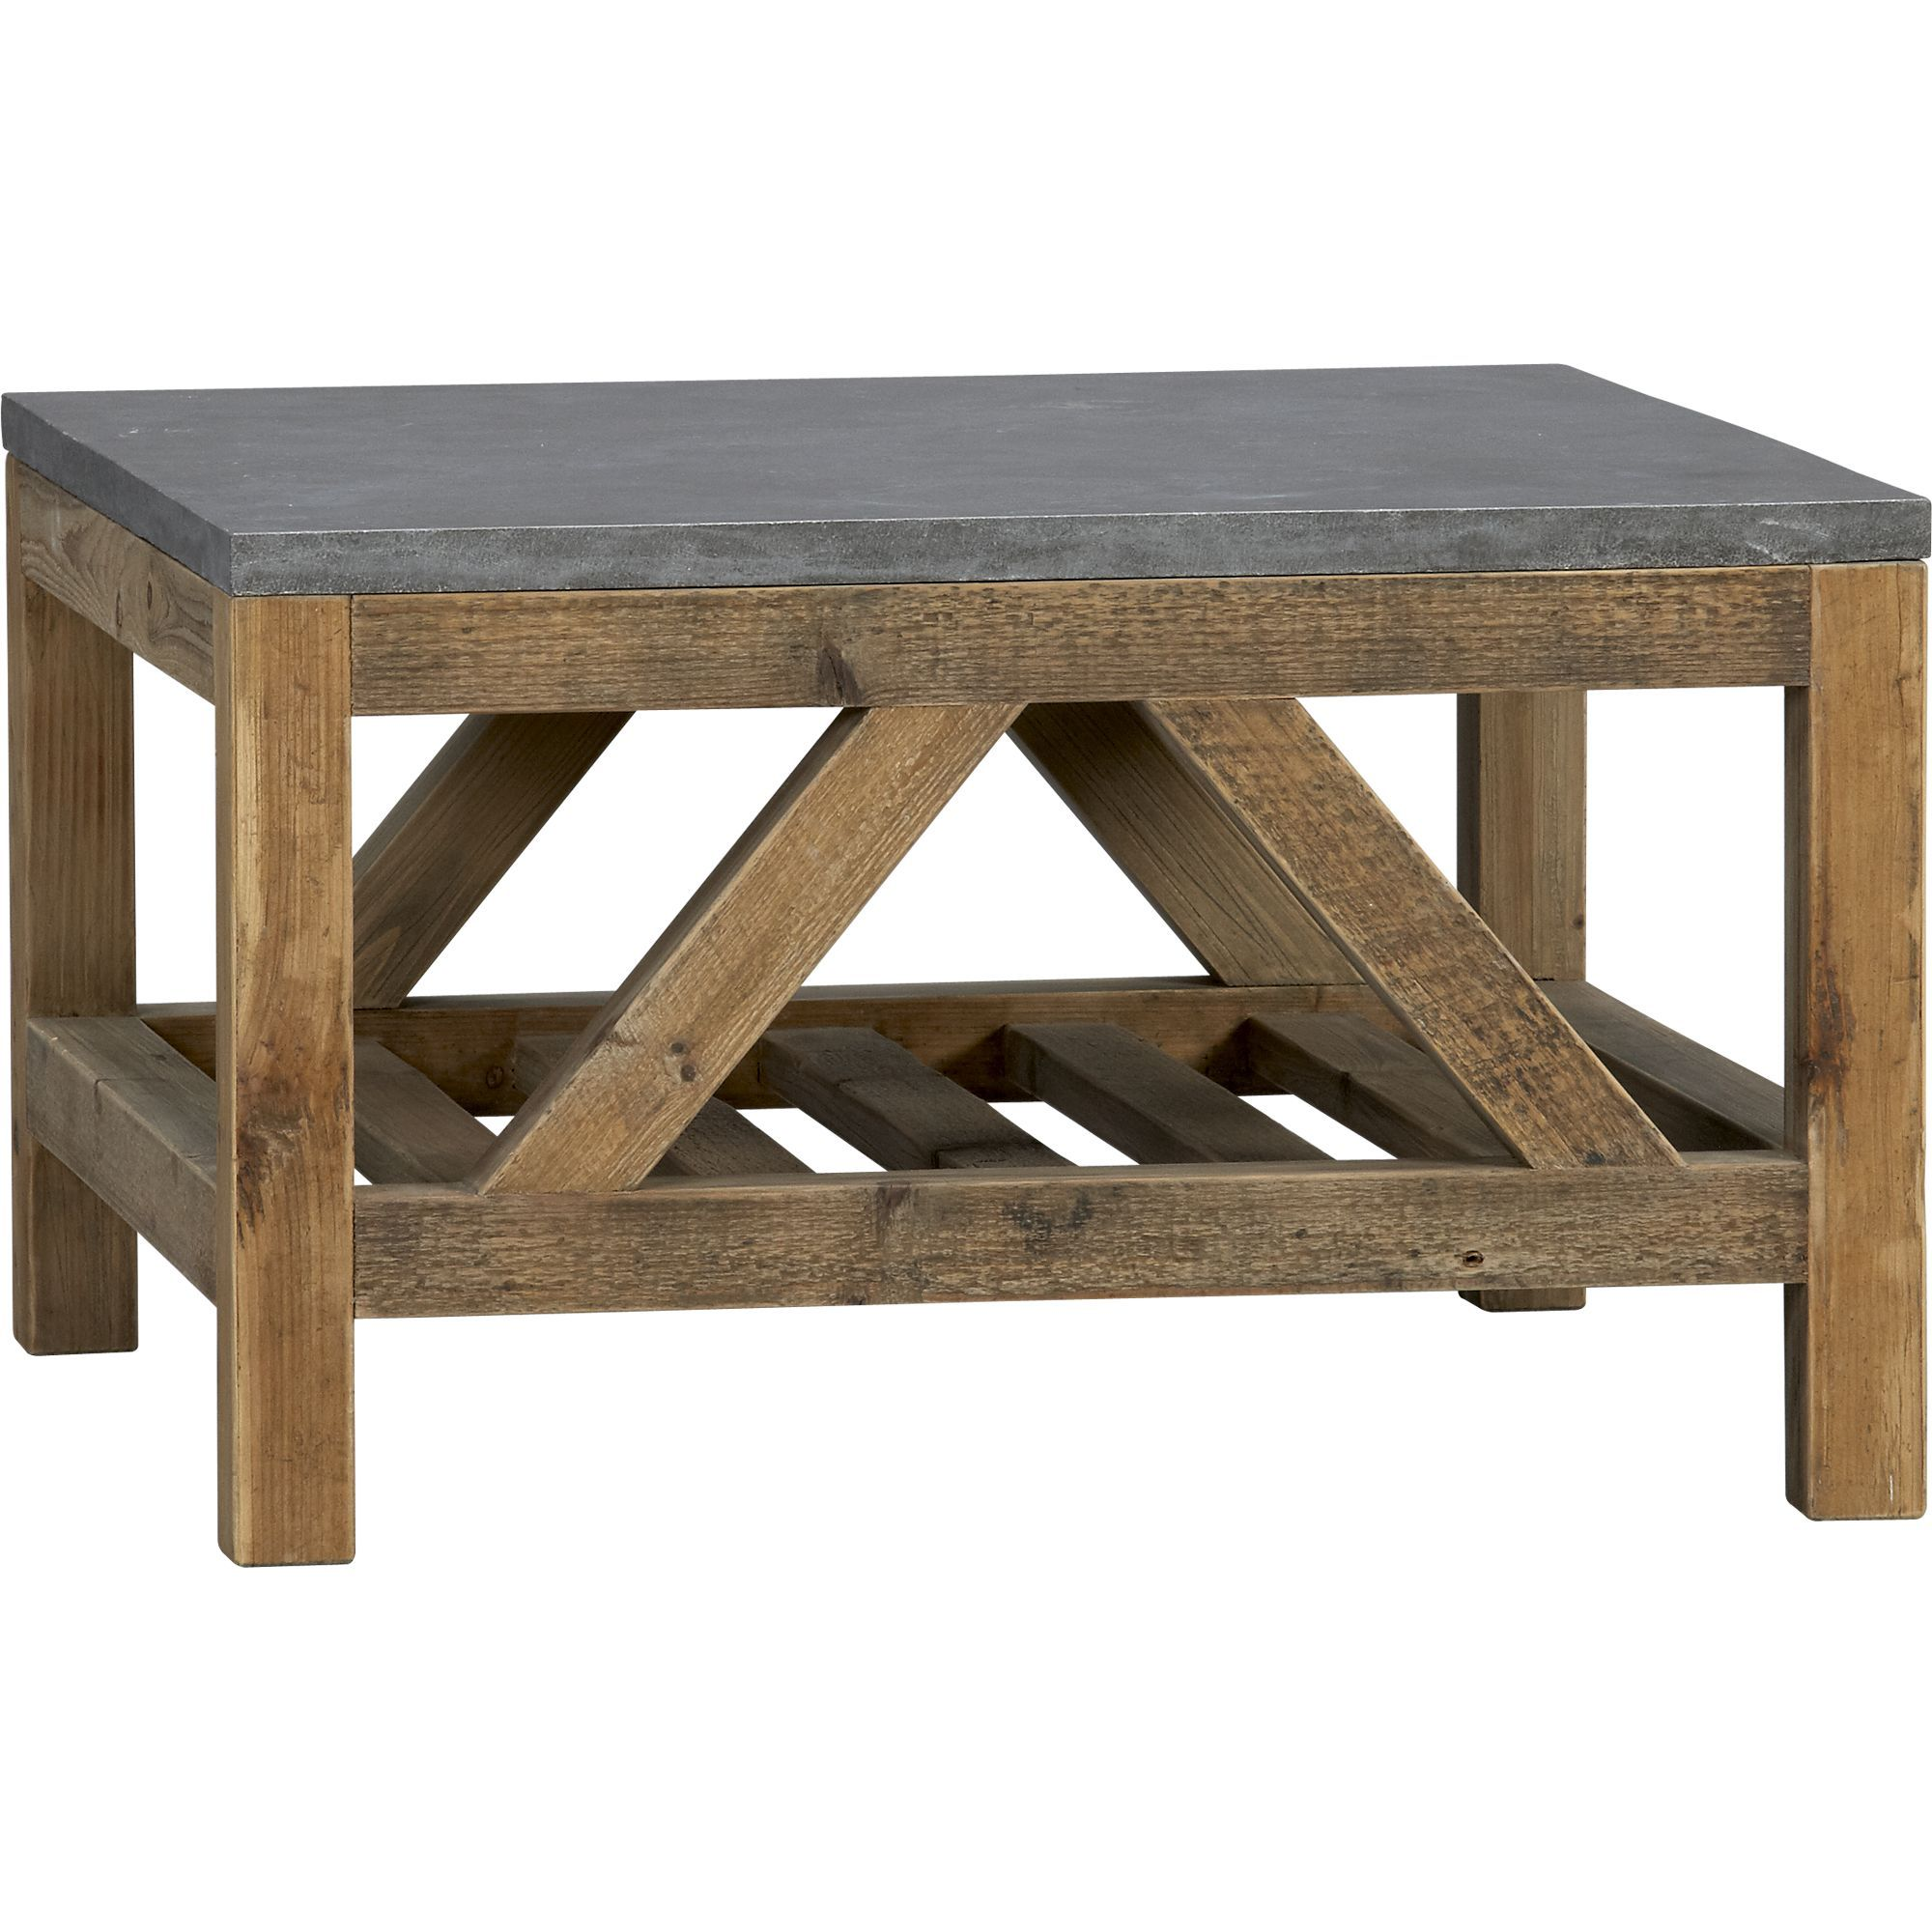 Bluestone coffee table in accent tables crate and barrel